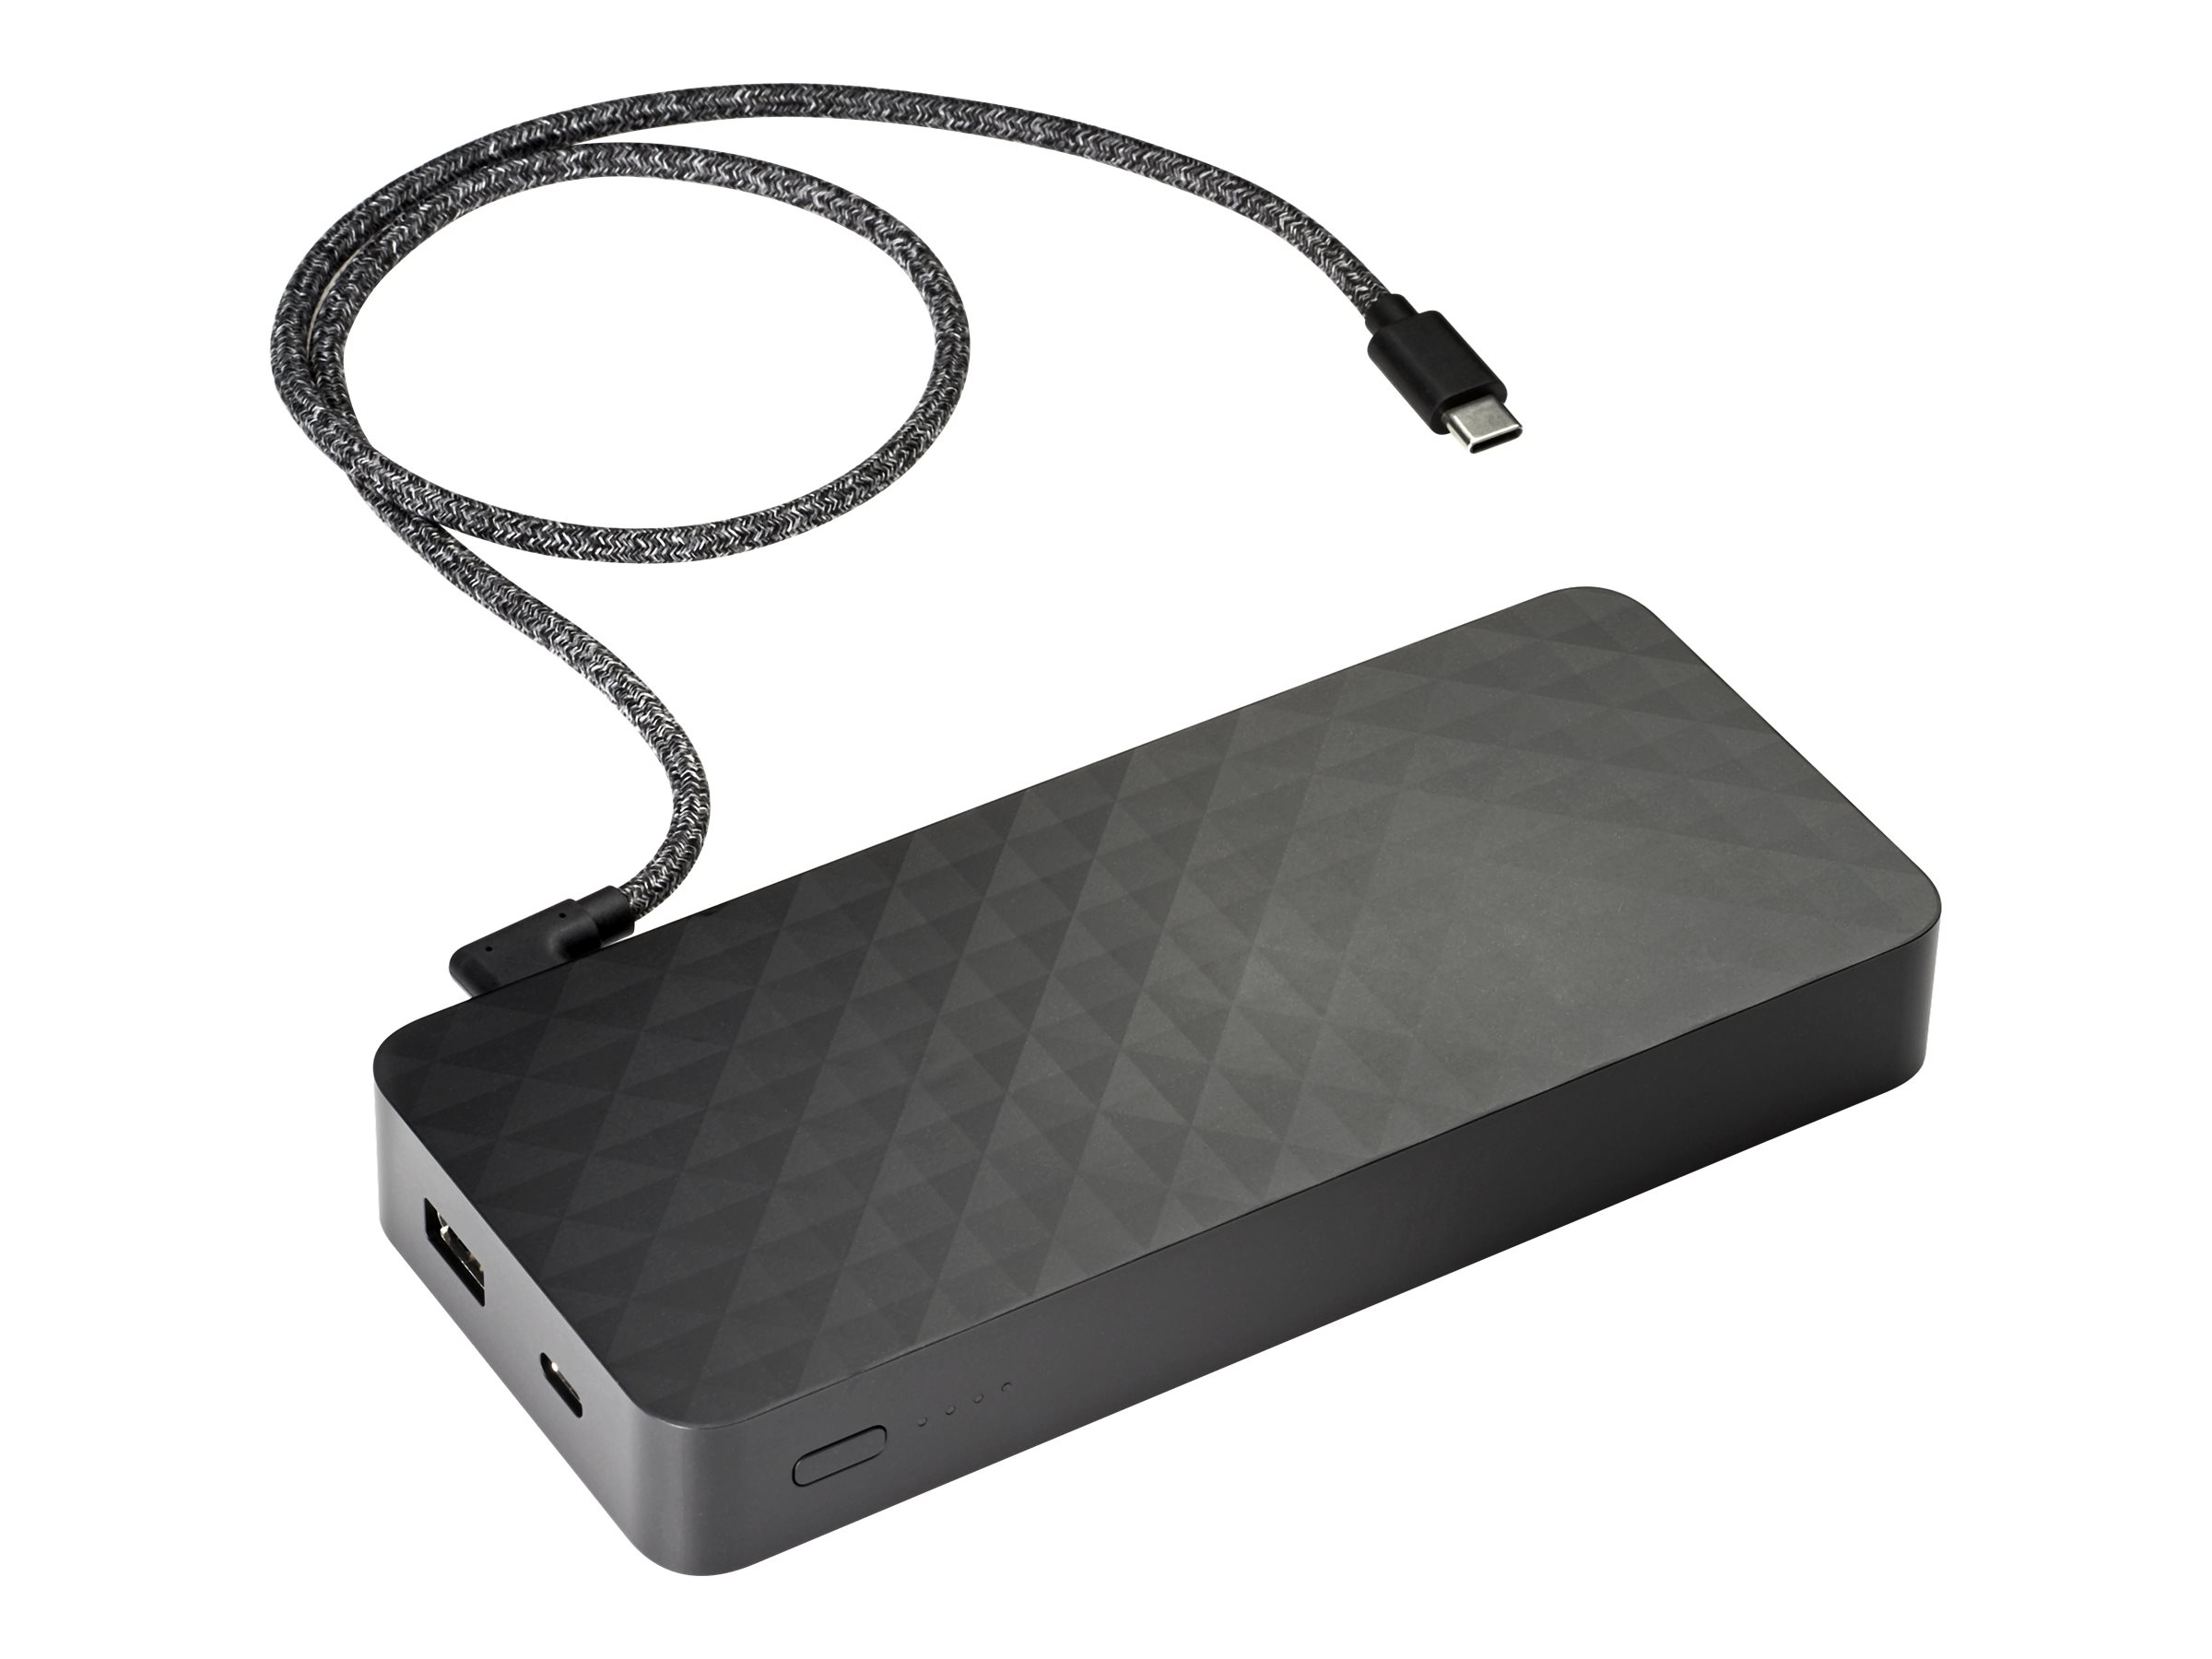 HP Notebook Power Bank - power bank - 20100 mAh - 72.36 Wh